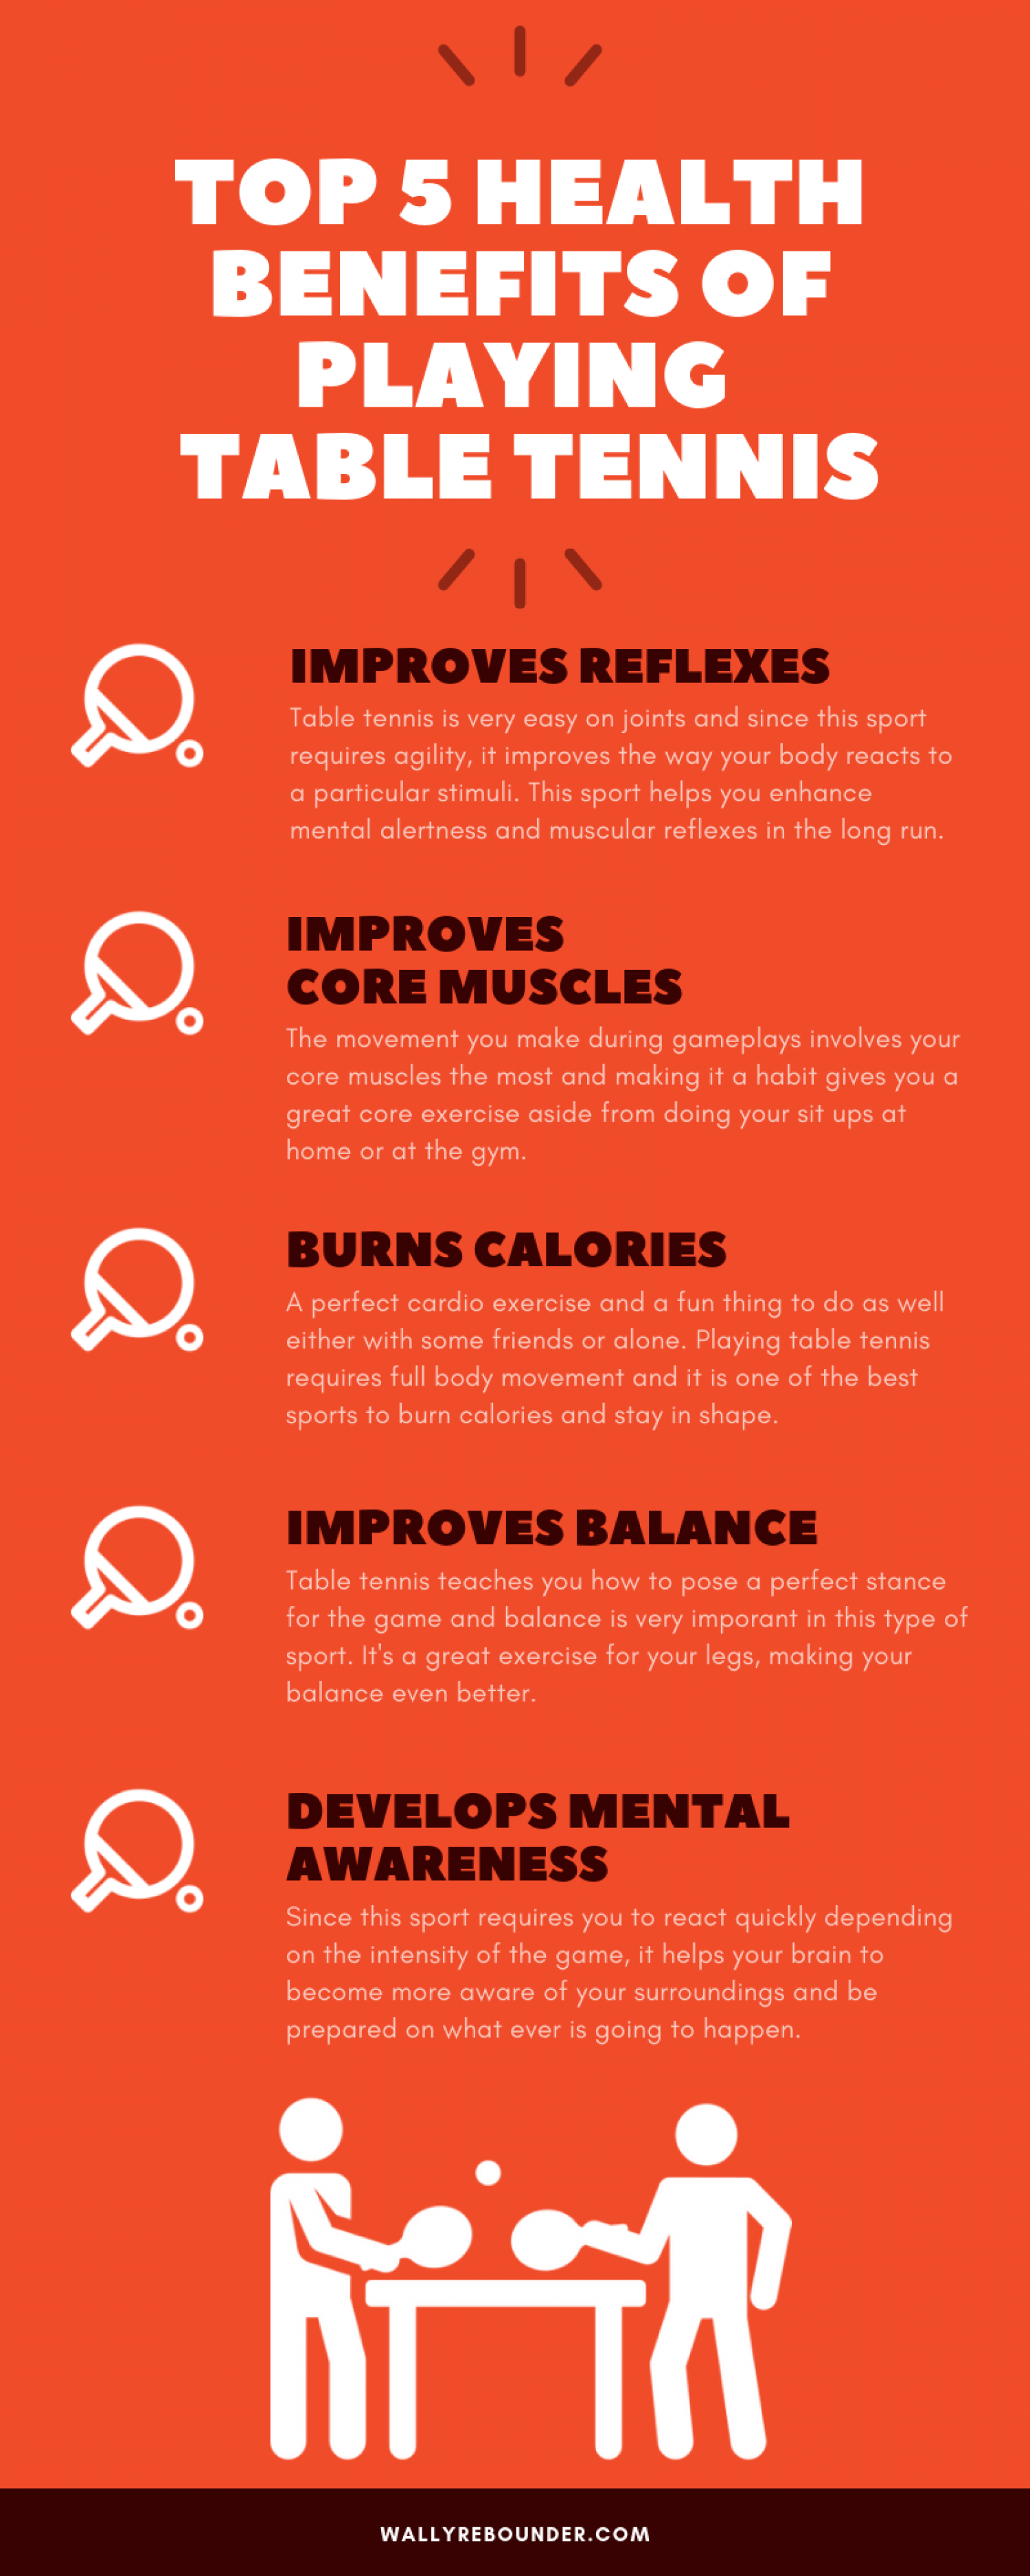 Top 5 Health Benefits Of Playing Table Tennis Visual Ly Table Tennis Tennis Health Benefits